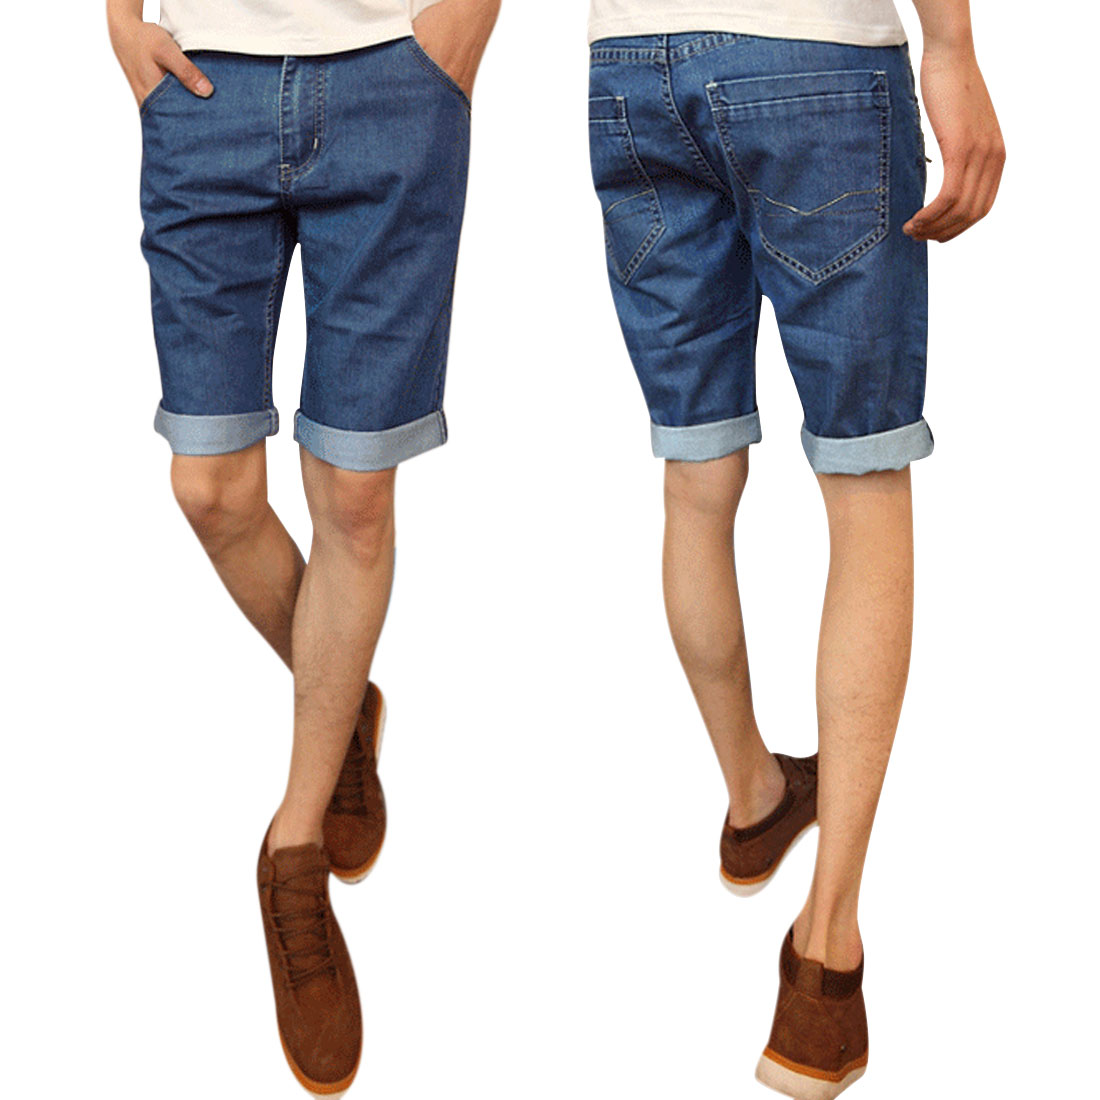 Men Summer Zip Fly Closure Five Pockets Short Jeans Blue W33